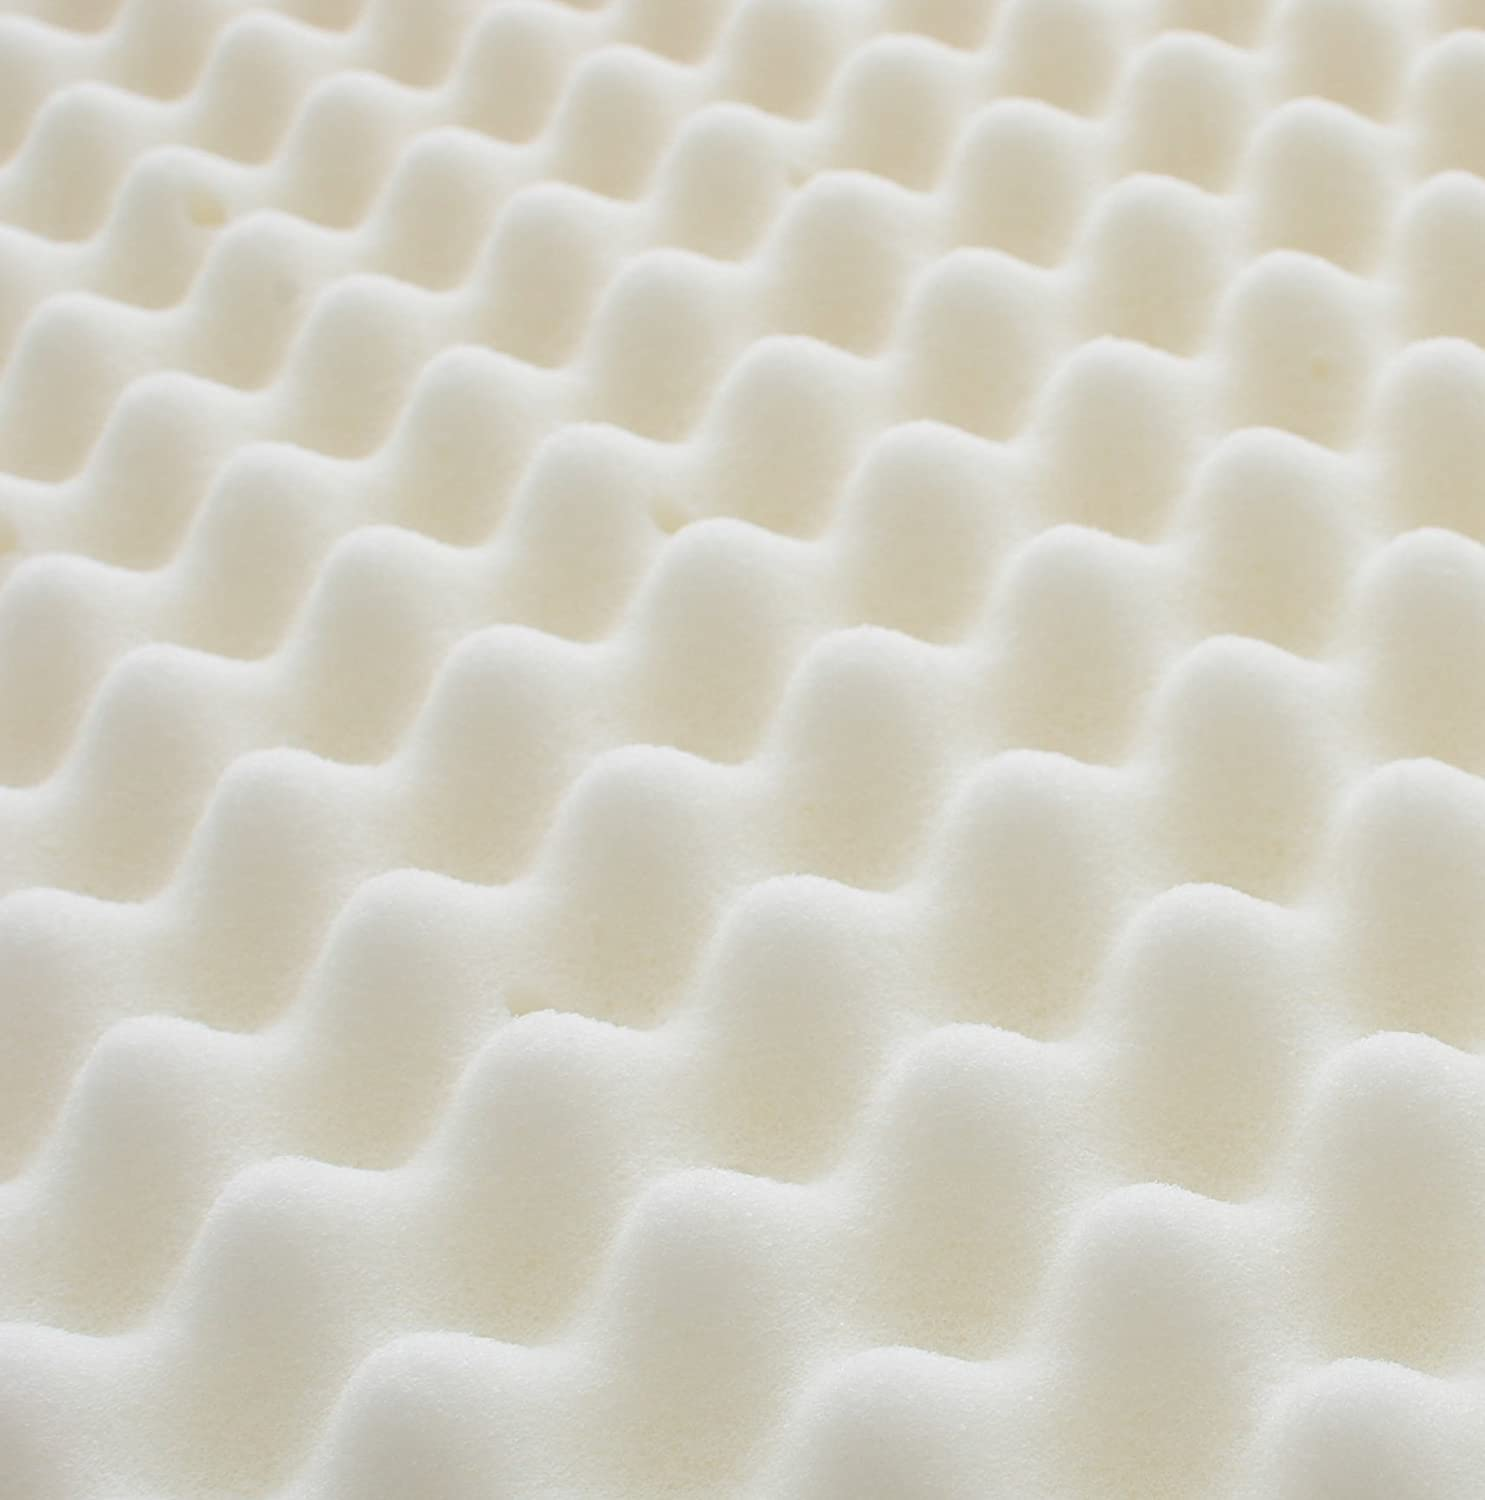 mattress texture. Amazon.com: Milliard 2-Inch Egg Crate Ventilated Memory Foam Mattress Topper, Full: Home \u0026 Kitchen Texture